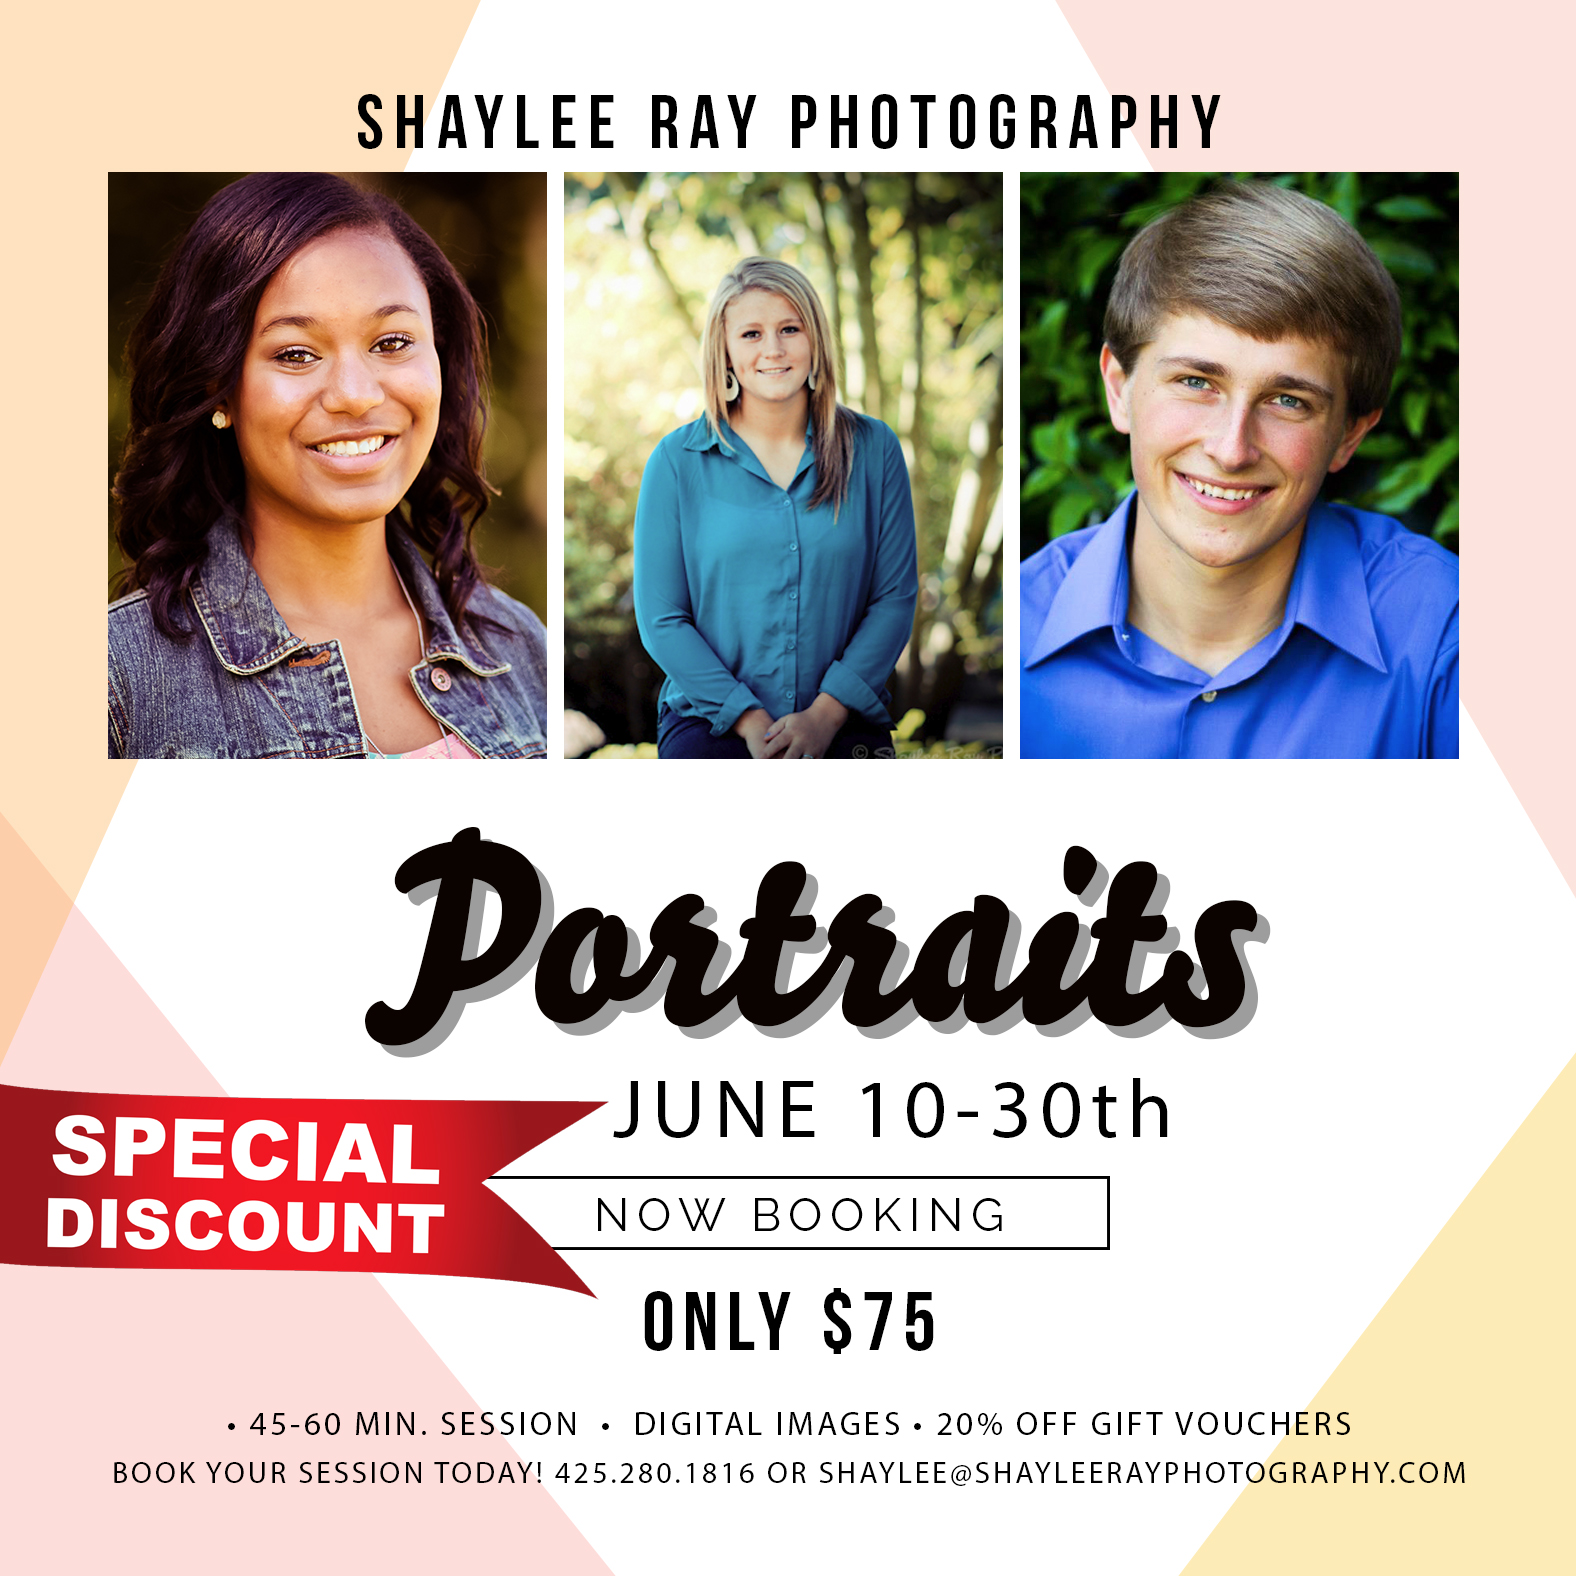 Reserve your portrait session today! Email shaylee@shayleerayphotography.com